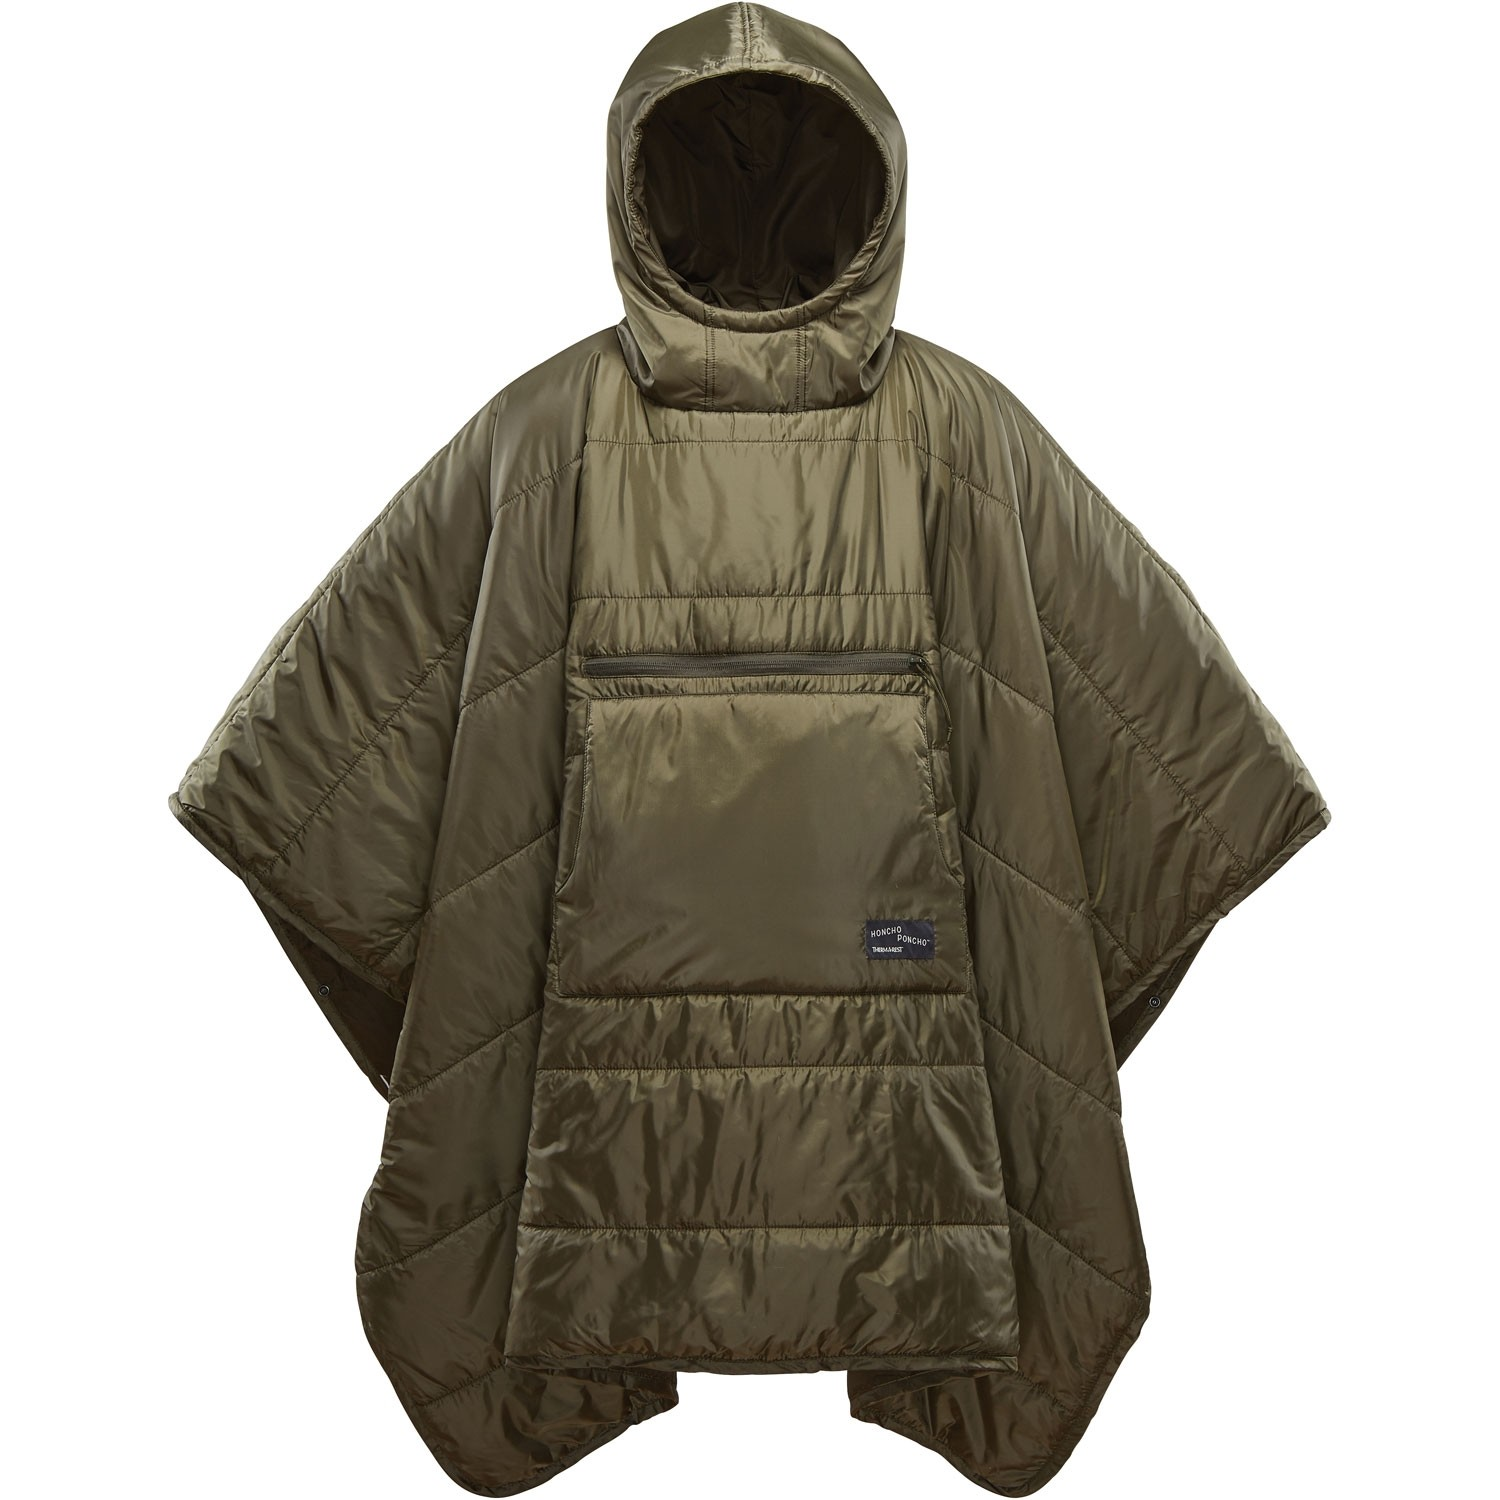 Therm-a-rest Honcho Poncho - Olivine